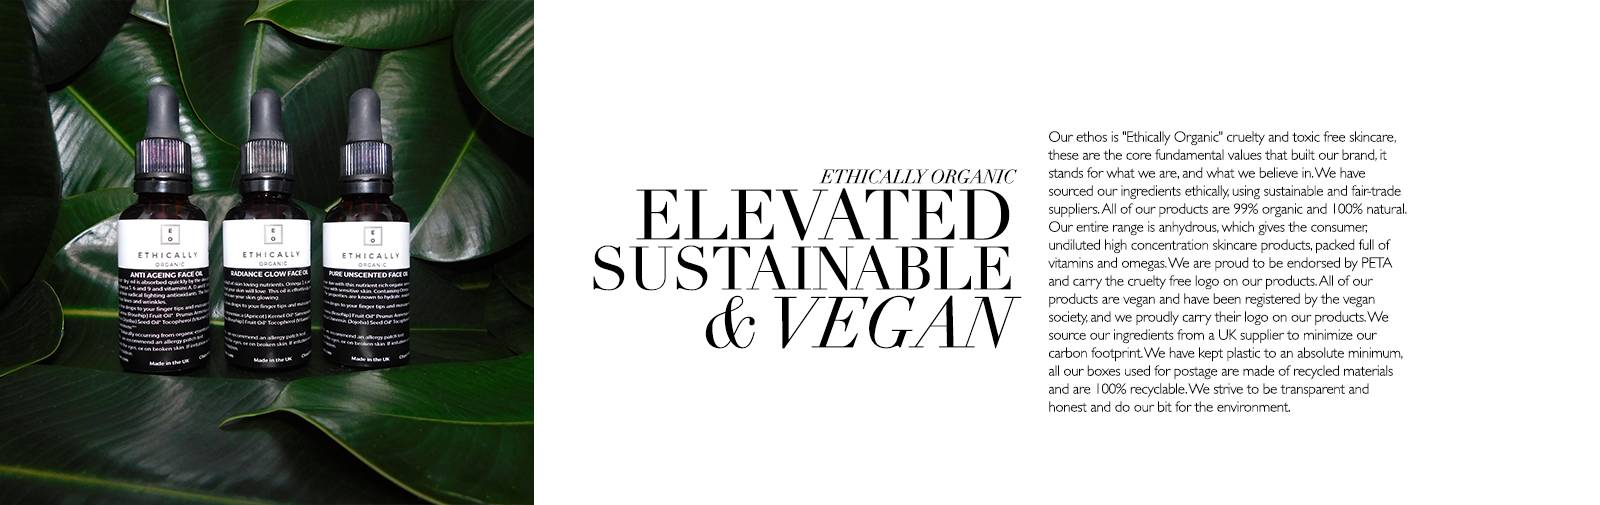 ETHICALLY ORGANIC - ELEVATED SUSTAINABLE & VEGAN - Our ethos is 'Ethically Organic' cruelty and toxic free skincare, these are the core fundamental values that built our brand, it stands for what we are, and what we believe in. We have sourced our ingredients ethically, using sustainable and fair-trade suppliers. All of our products are 99% organic and 100% natural. Our entire range is anhydrous, which gives the consumer, undiluted high concentration skincare products, packed full of vitamins and omegas. We are proud to be endorsed by PETA and carry the cruelty free logo on our products. All of our products are vegan and have been registered by the vegan society, and we proudly carry their logo on our products. We source our ingredients from a UK supplier to minimize our carbon footprint. We have kept plastic to an absolute minimum, all our boxes used for postage are made of recycled materials and are 100% recyclable. We strive to be transparent and honest and do our bit for the environment.